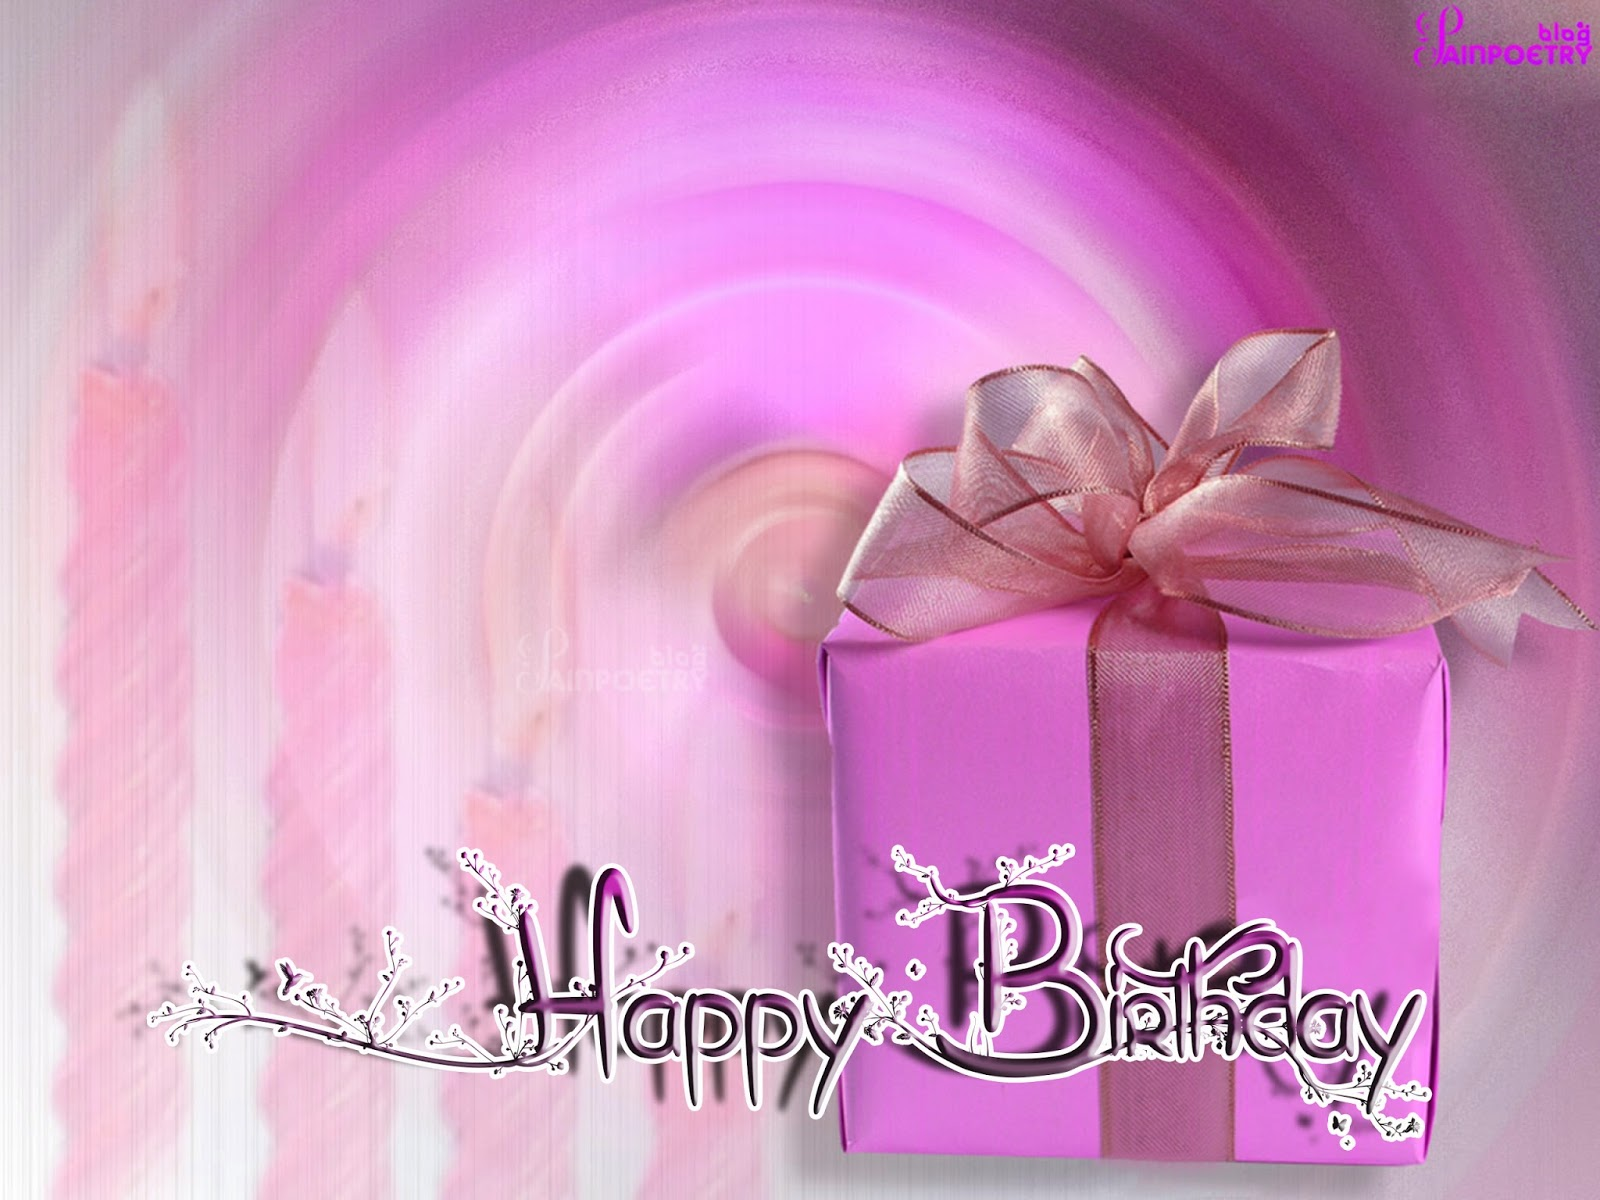 Happy-Birthday-Special-Gift-Image-Photo-Wallpaper-HD